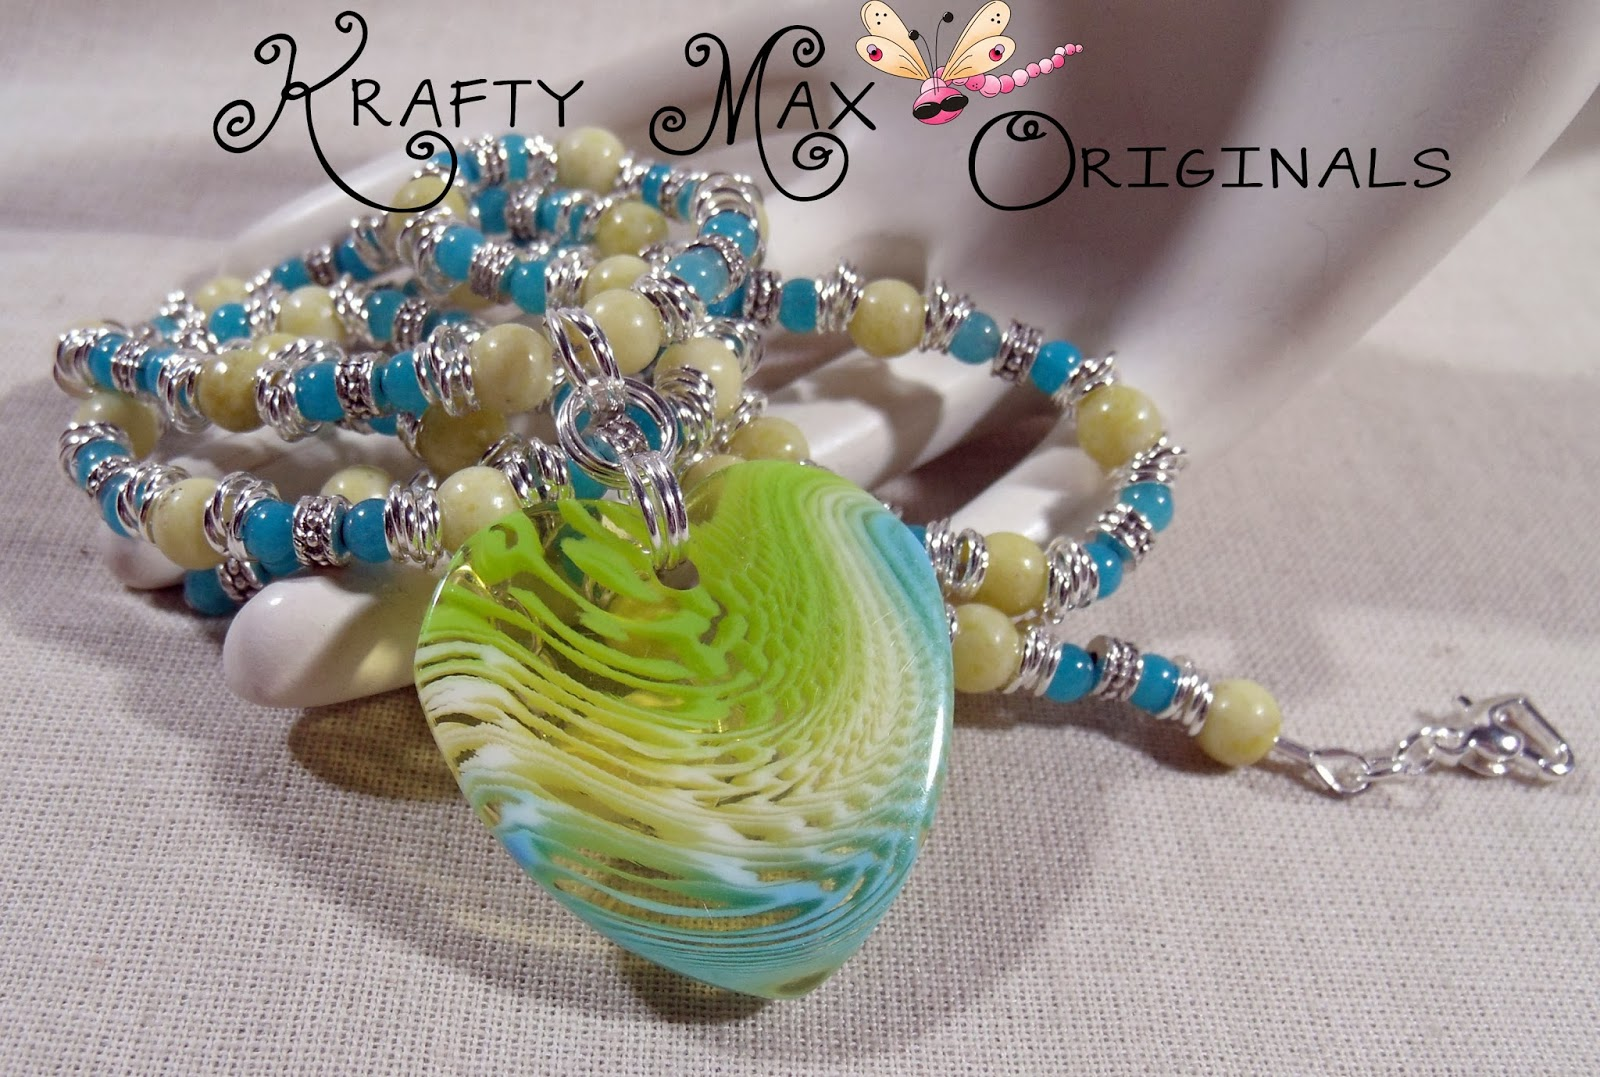 http://www.lajuliet.com/index.php/2013-01-04-15-21-51/ad/gemstone,92/soft-green-and-blue-beautiful-necklace-set-a-krafty-max-original-design,142